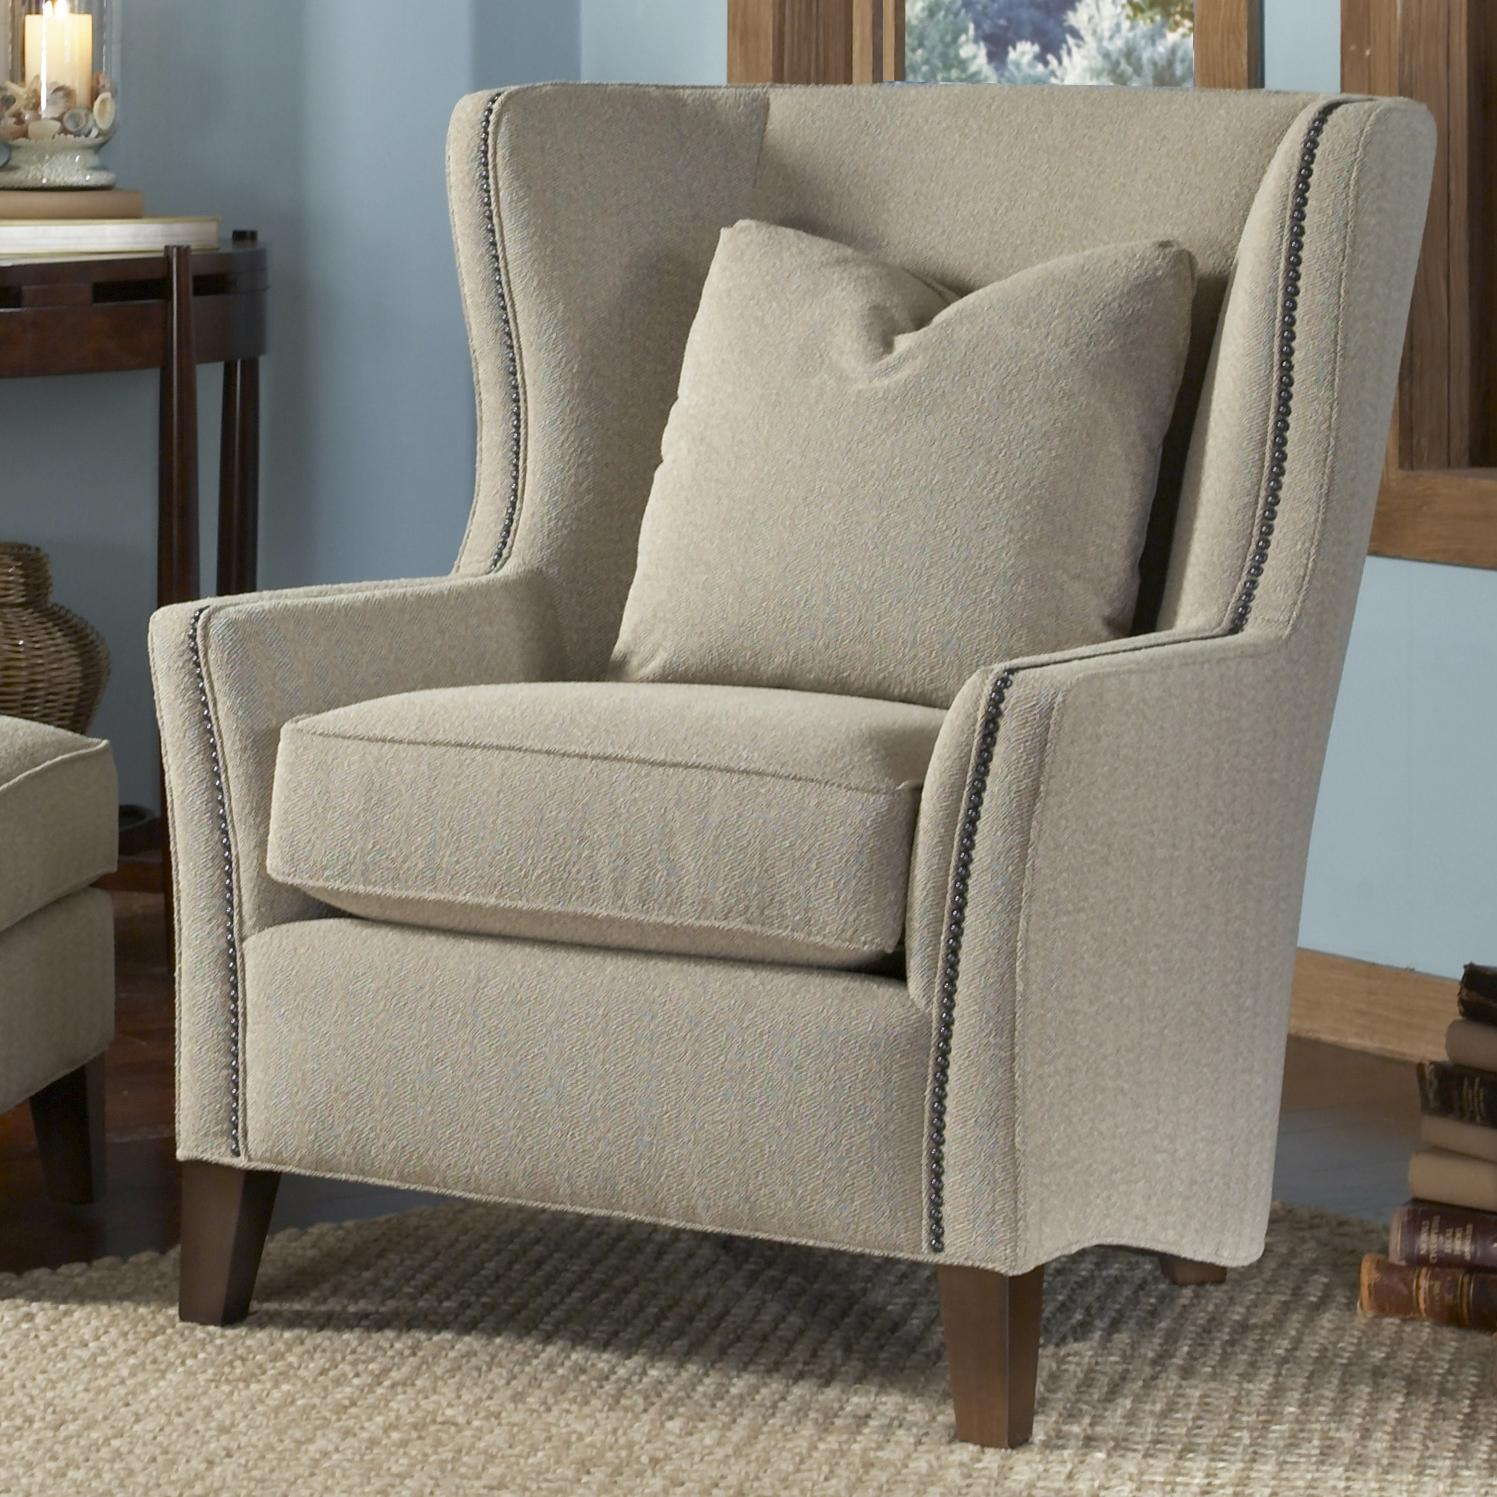 Wing chair with ottoman - Contemporary Wingback Chair With Track Arms